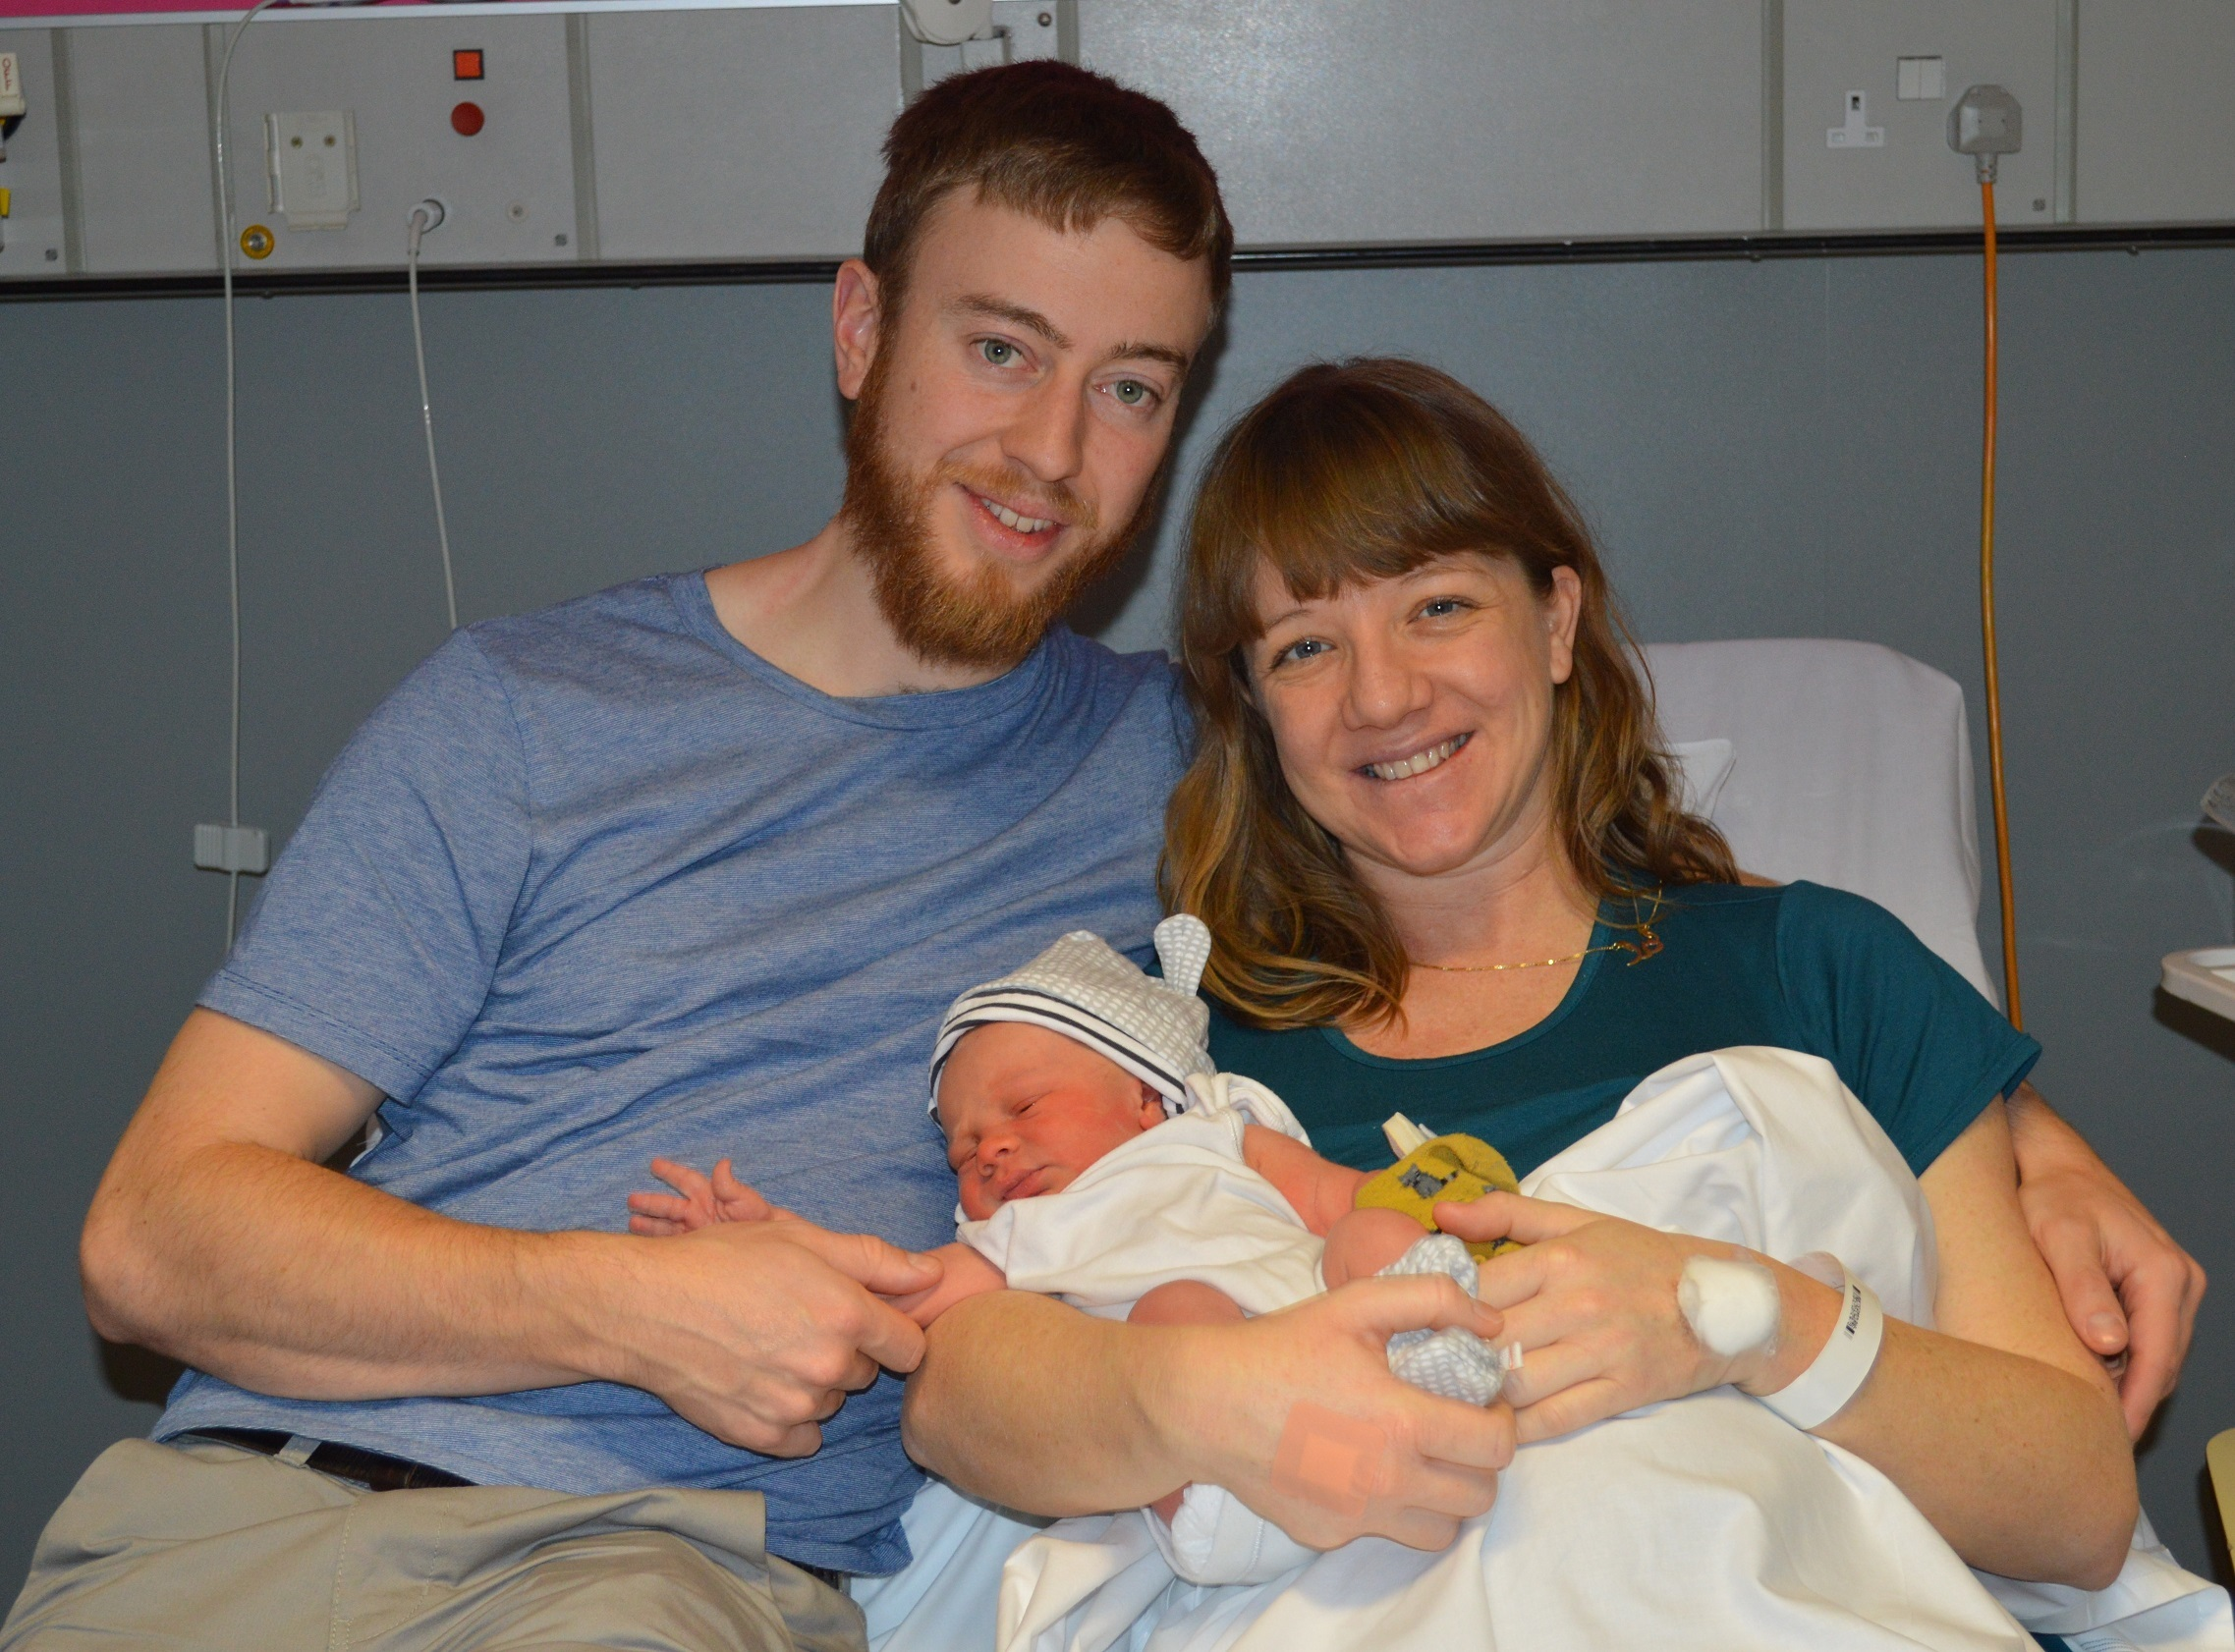 Parents Laura Allum and Daniel Peters with newborn baby Dylan